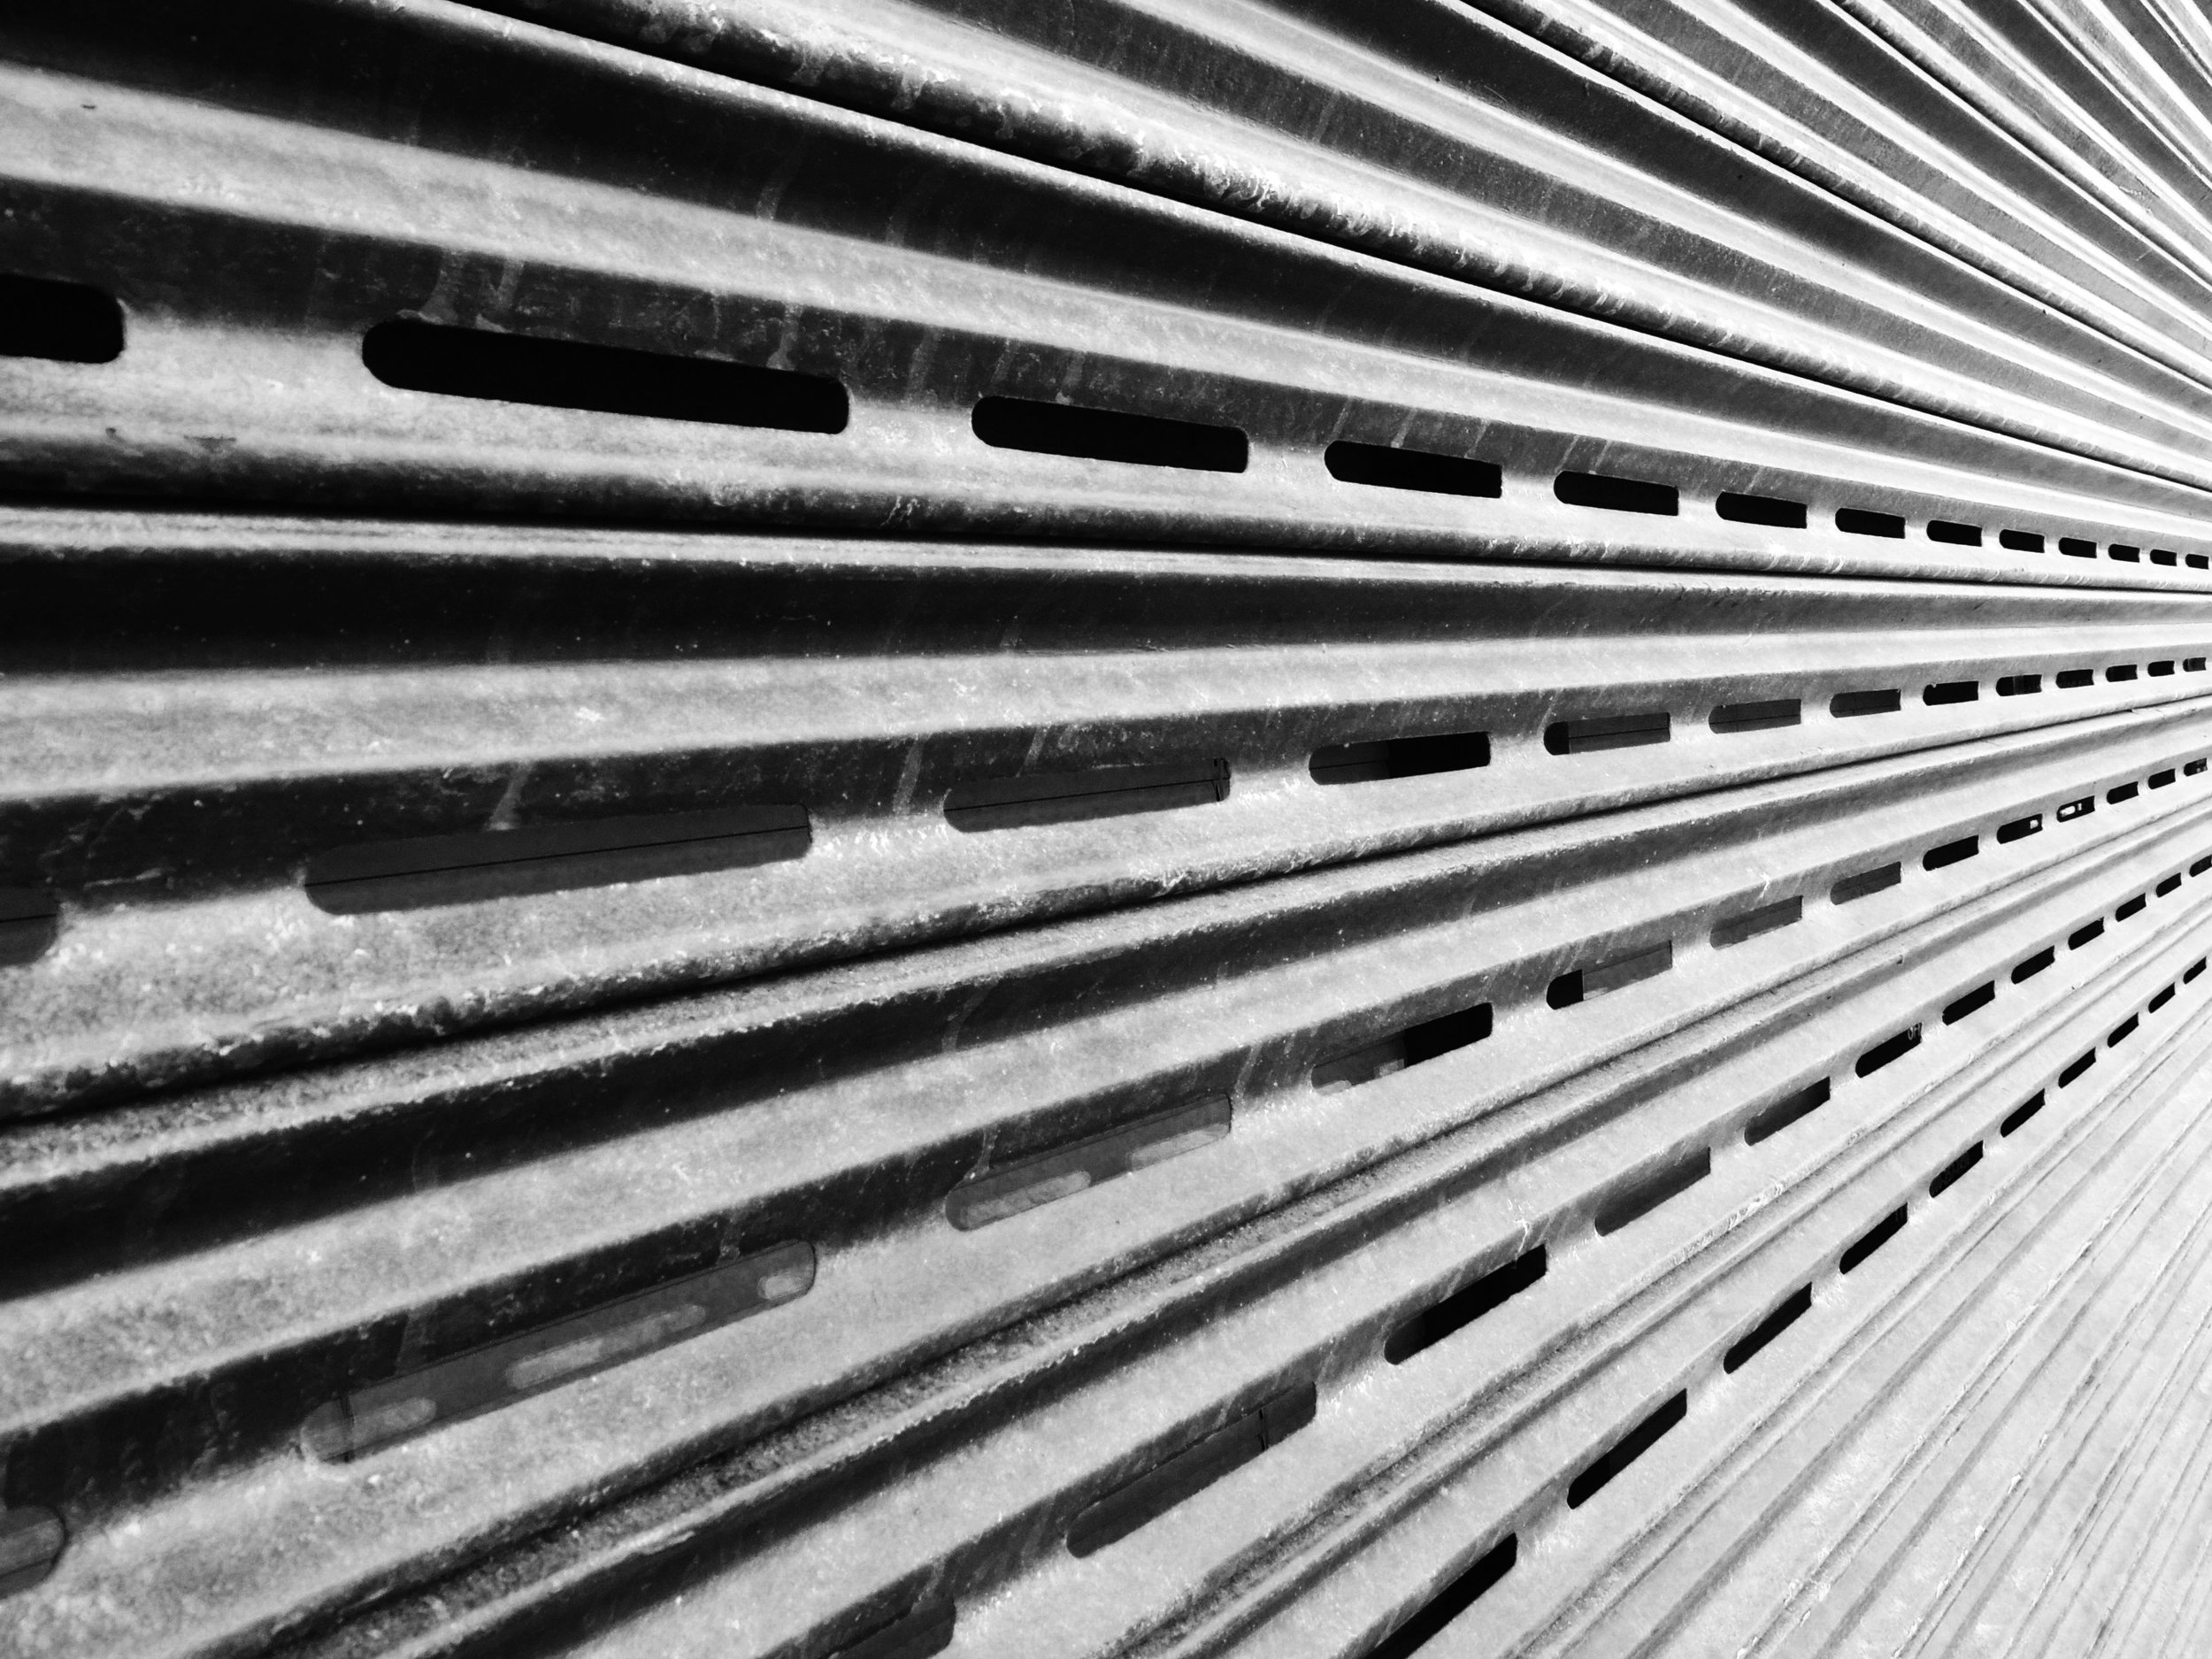 Black and White Abstract Texture Photography